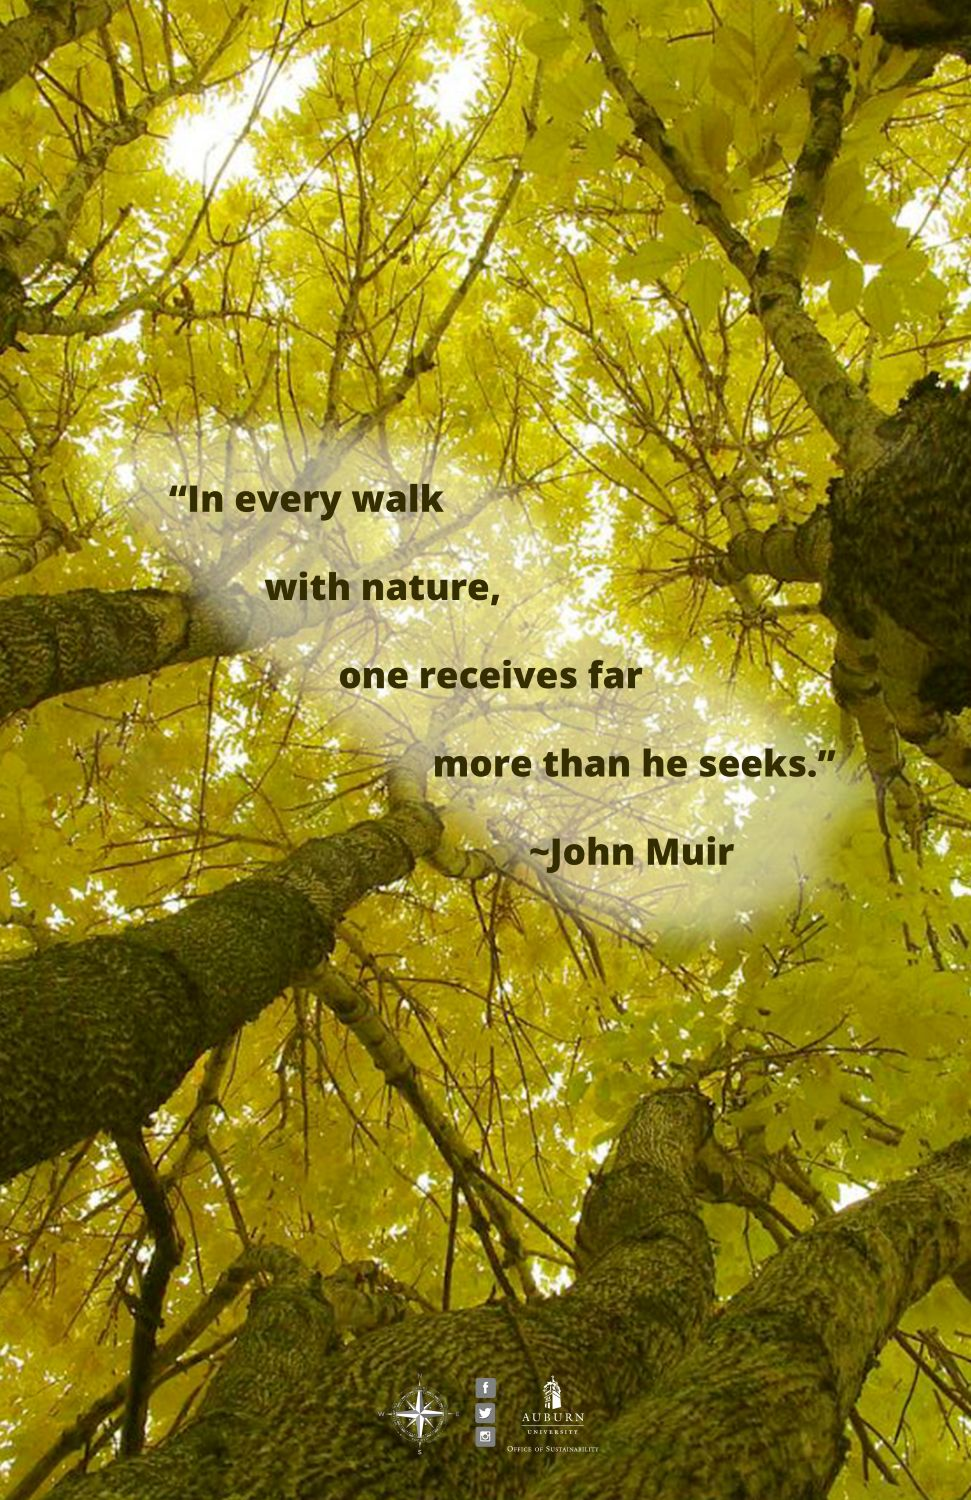 """Graphic with John Muir quote: """"In every walk with nature, one receives far more than he seeks."""""""